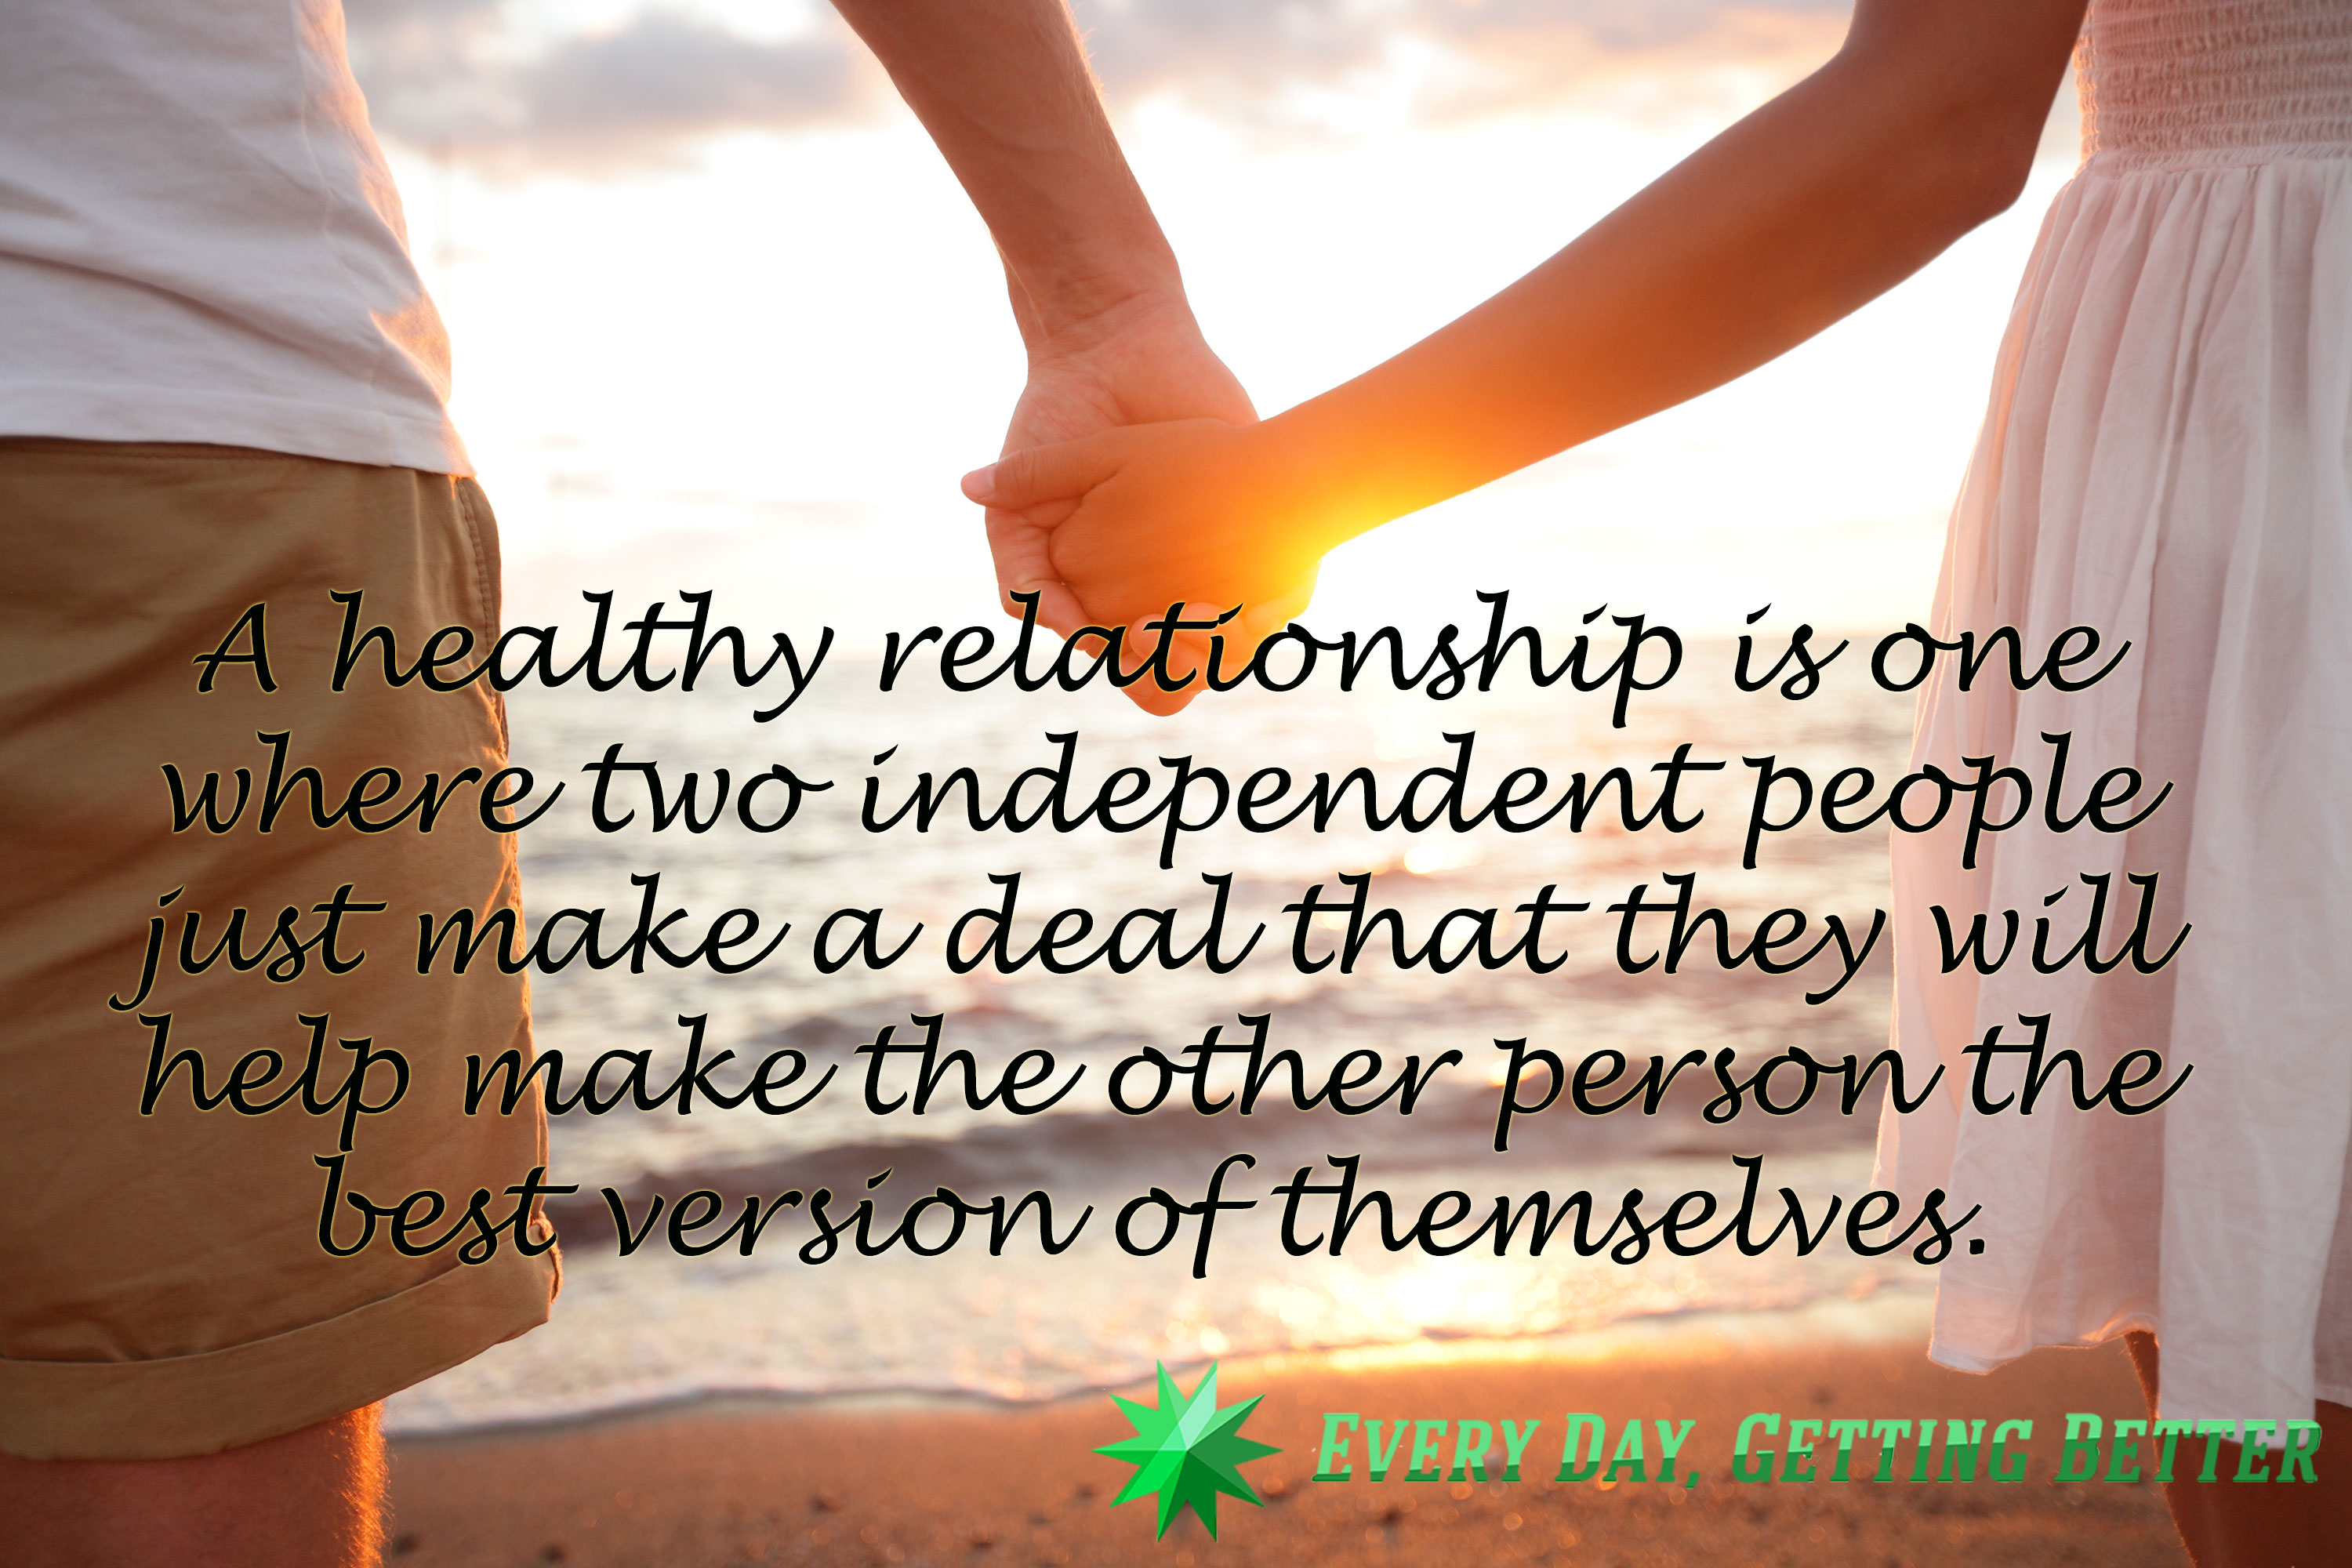 A Healthy Relationship Every Day Getting Better